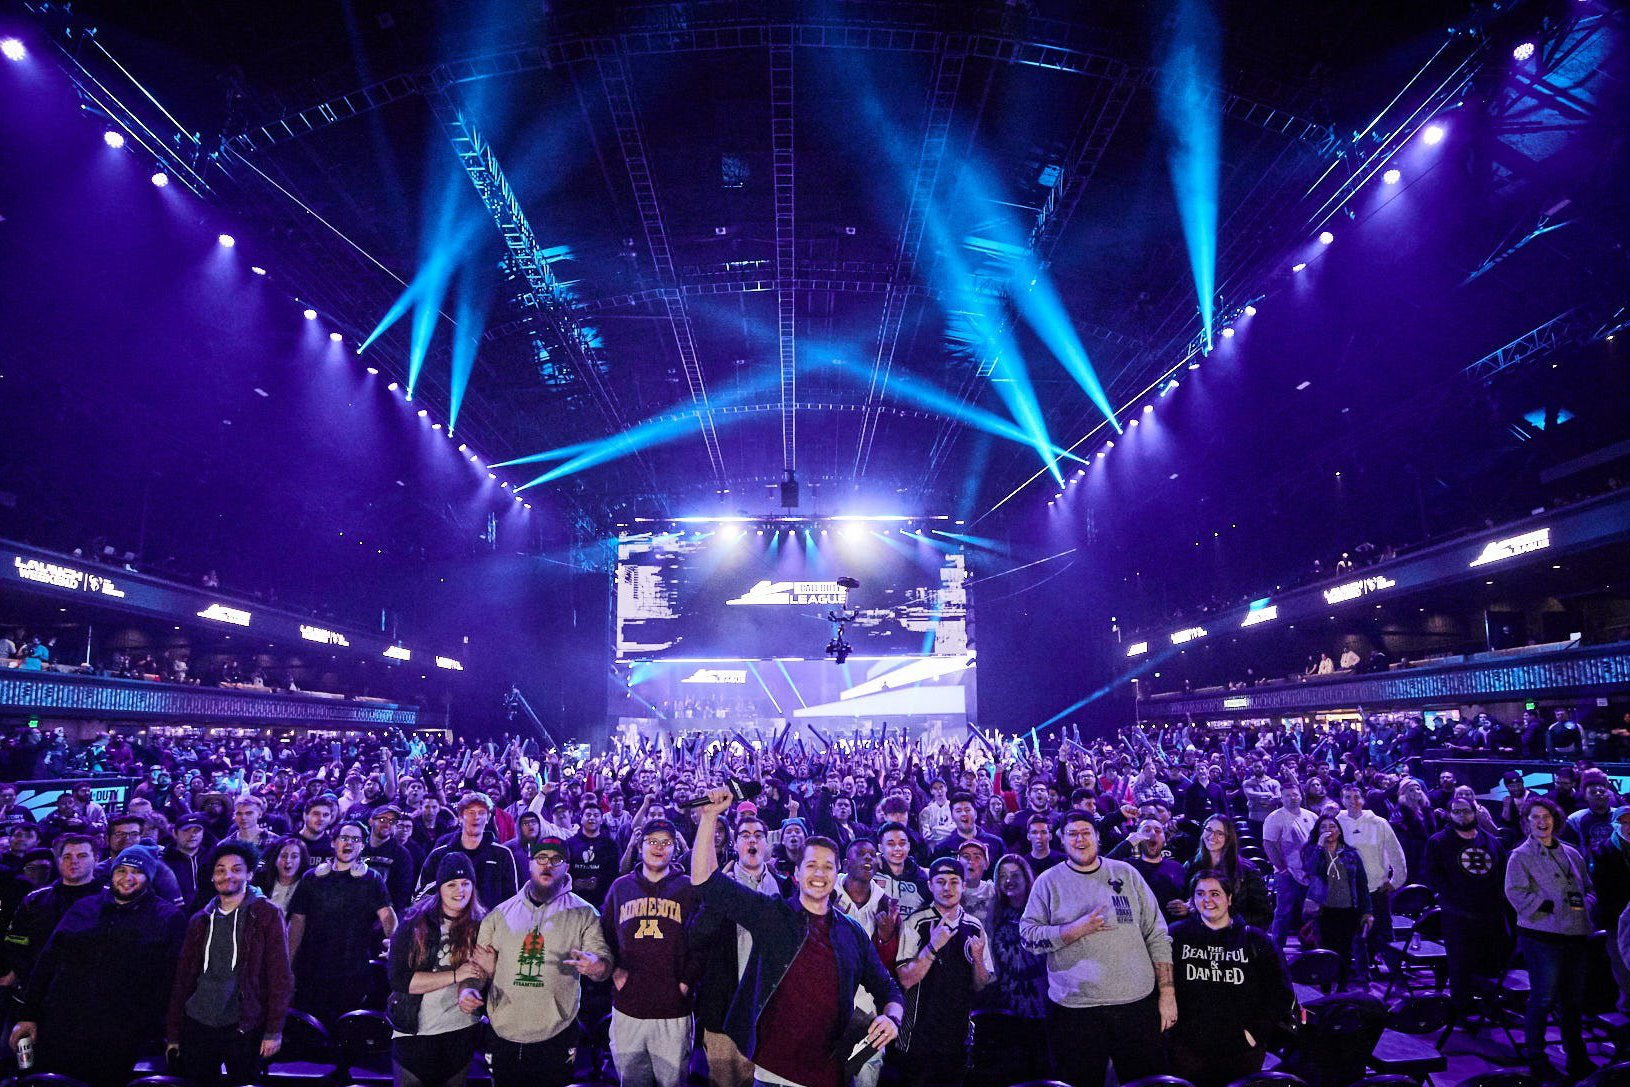 The Armory, Call of Duty League Launch Weekend.